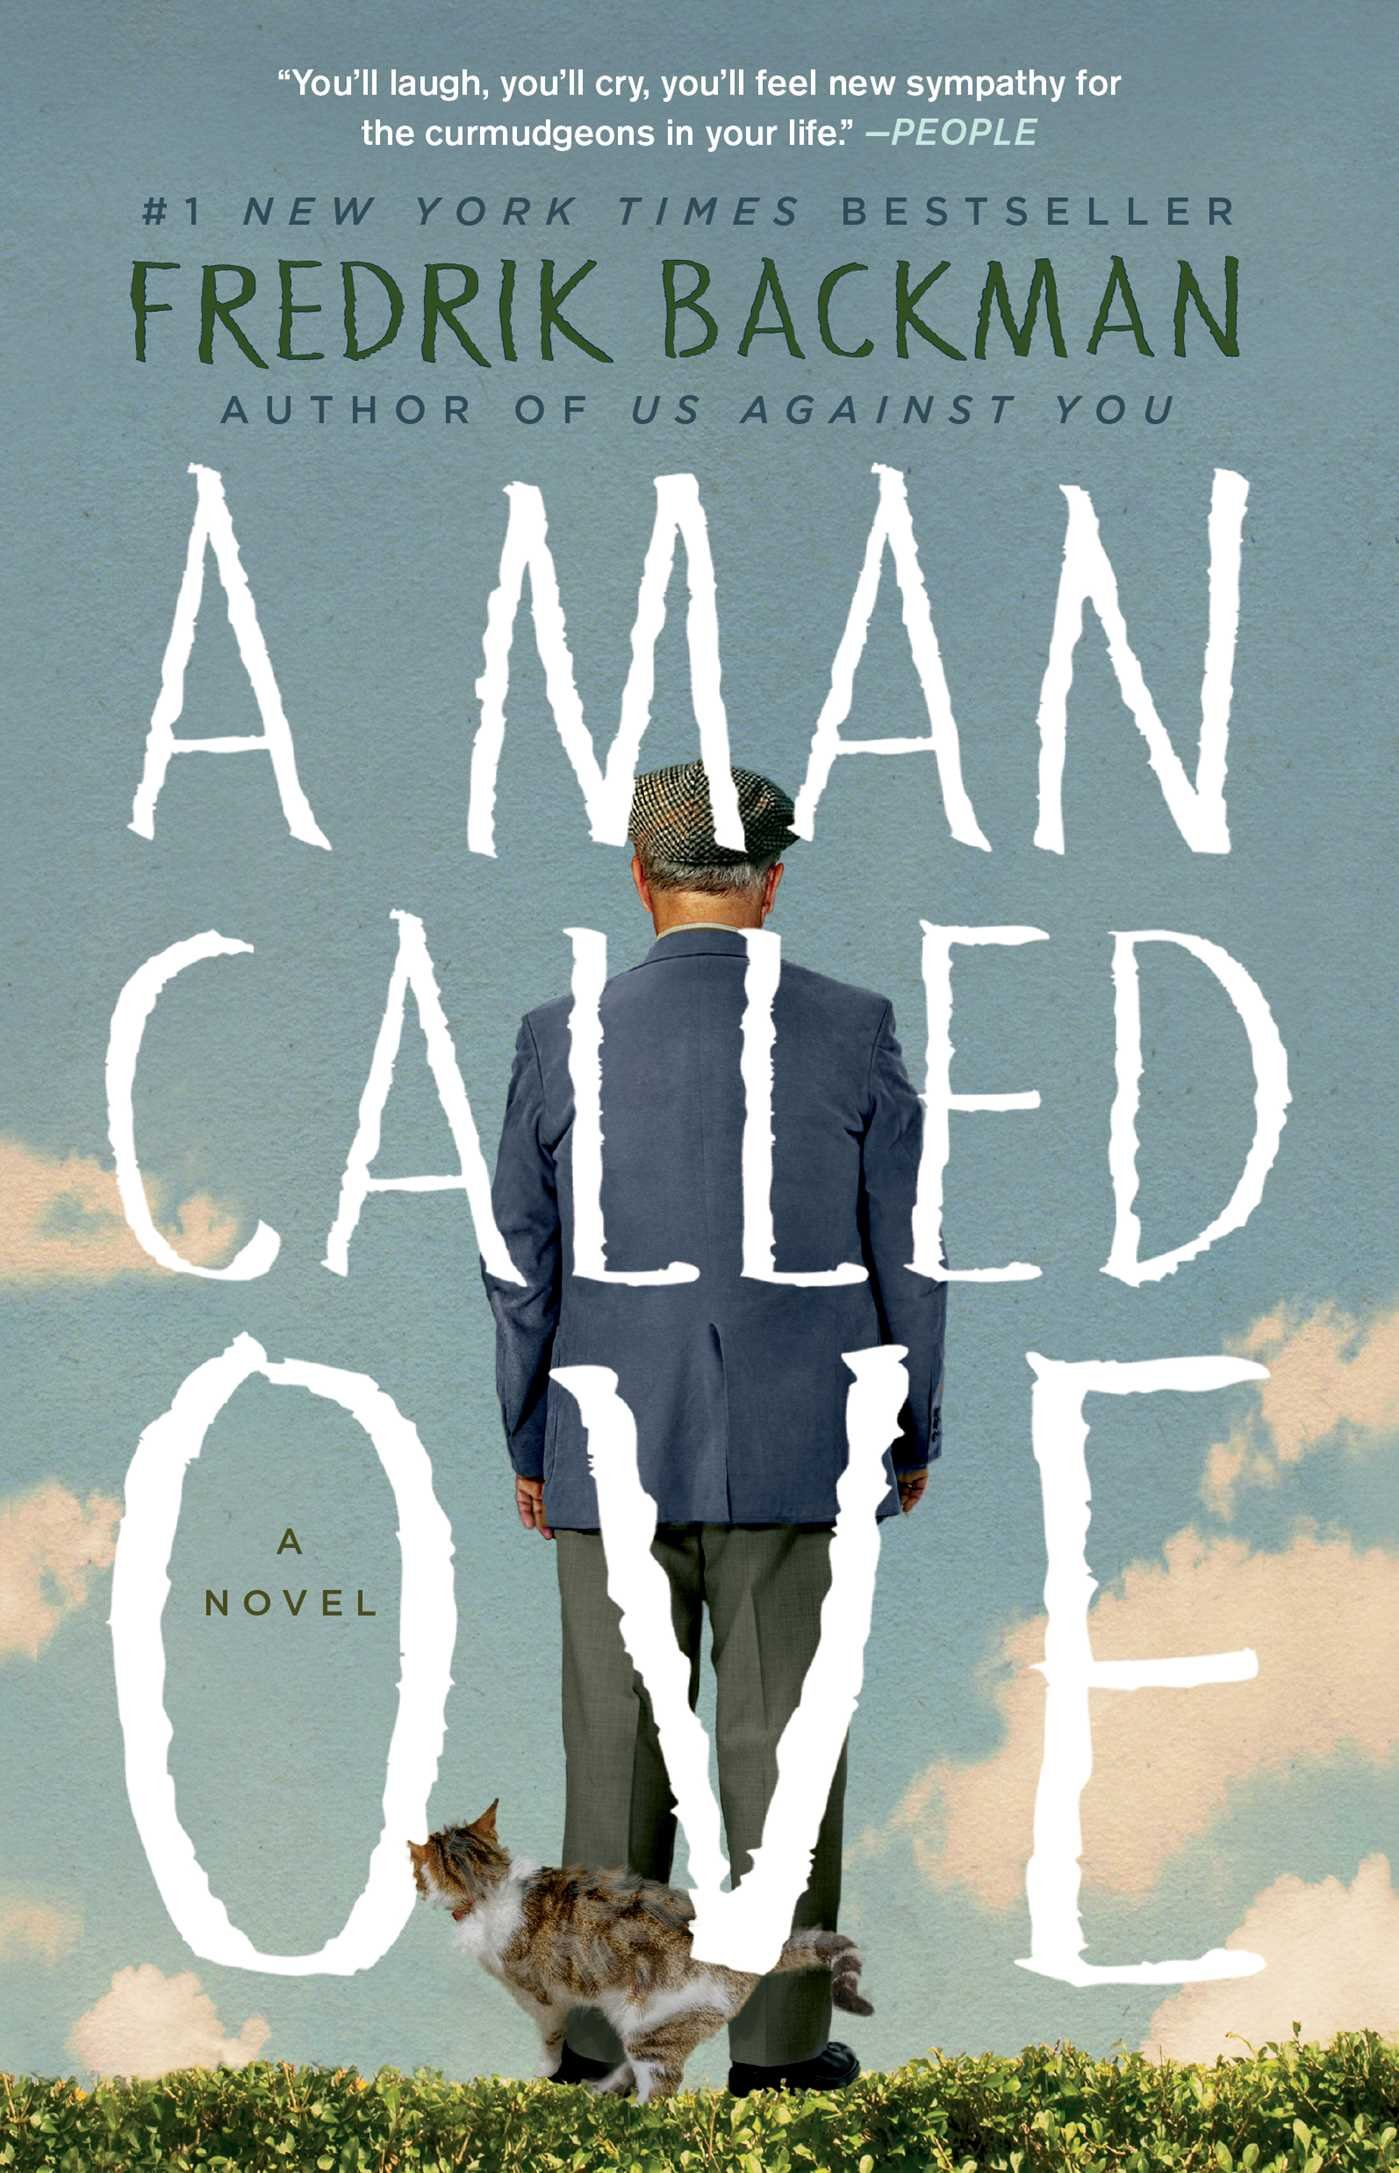 Amazon.com: A Man Called Ove: A Novel (9781476738024): Backman ...